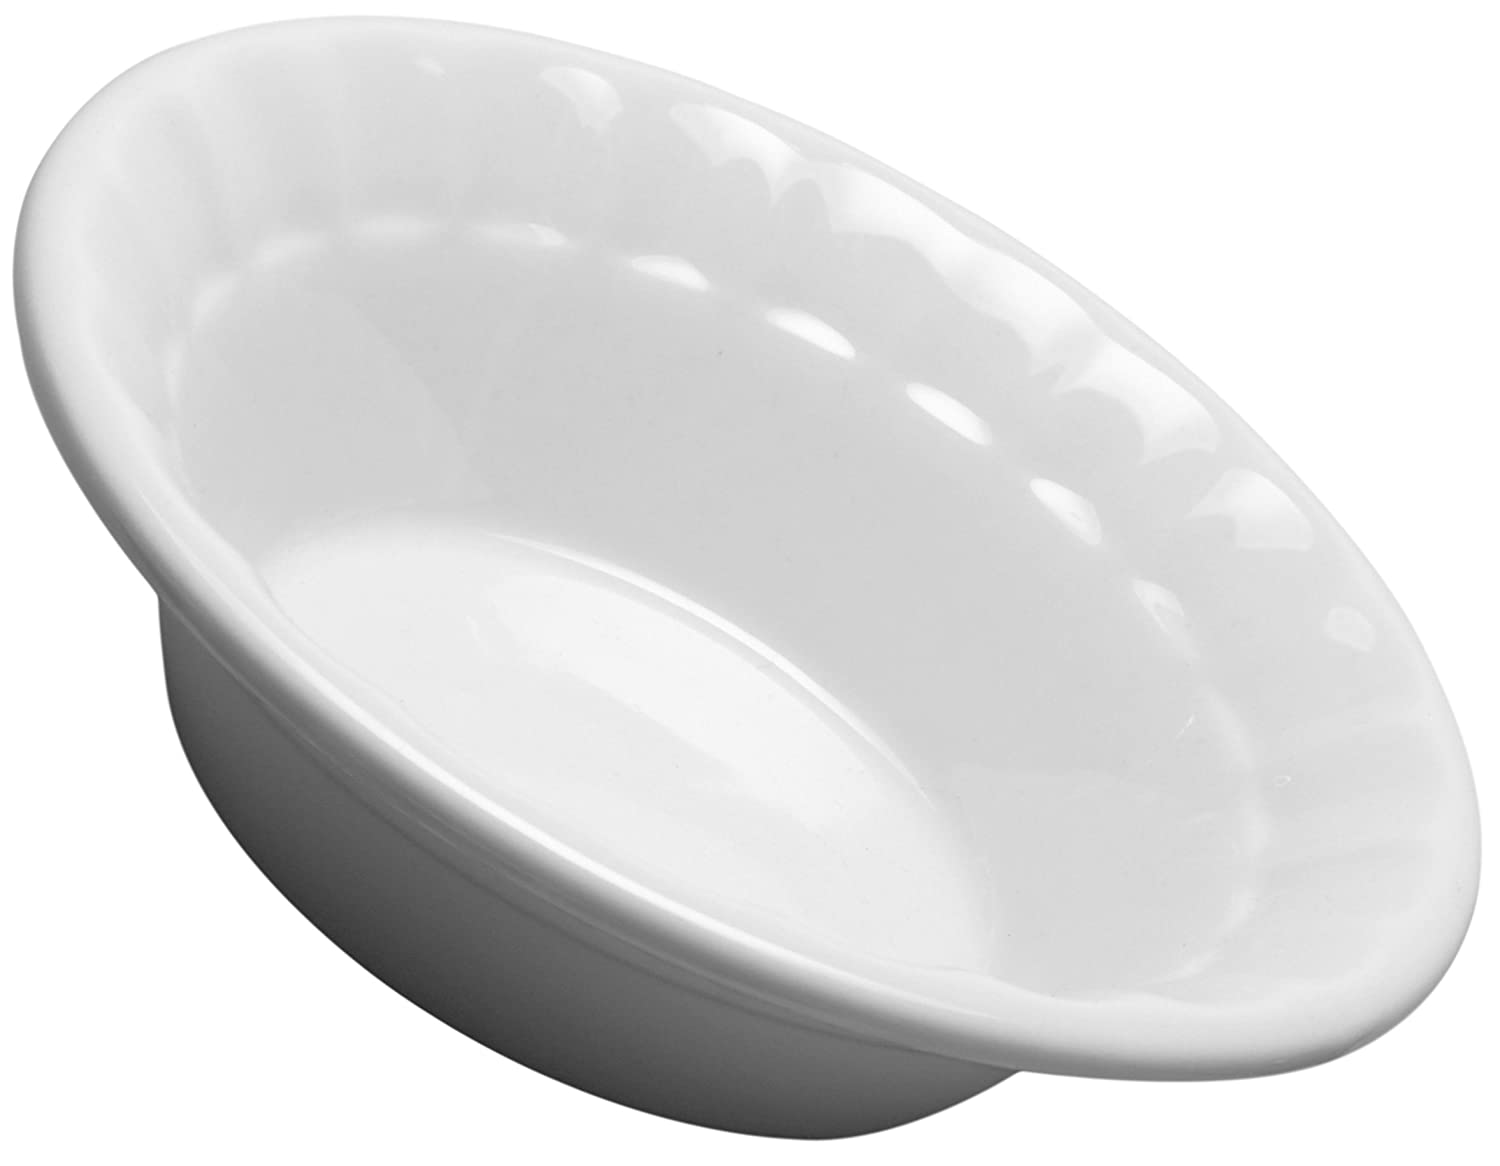 HIC Harold Import Co. 98054 HIC Individual Deep Dish Pie Plate 5-Inch Fine White Porcelain